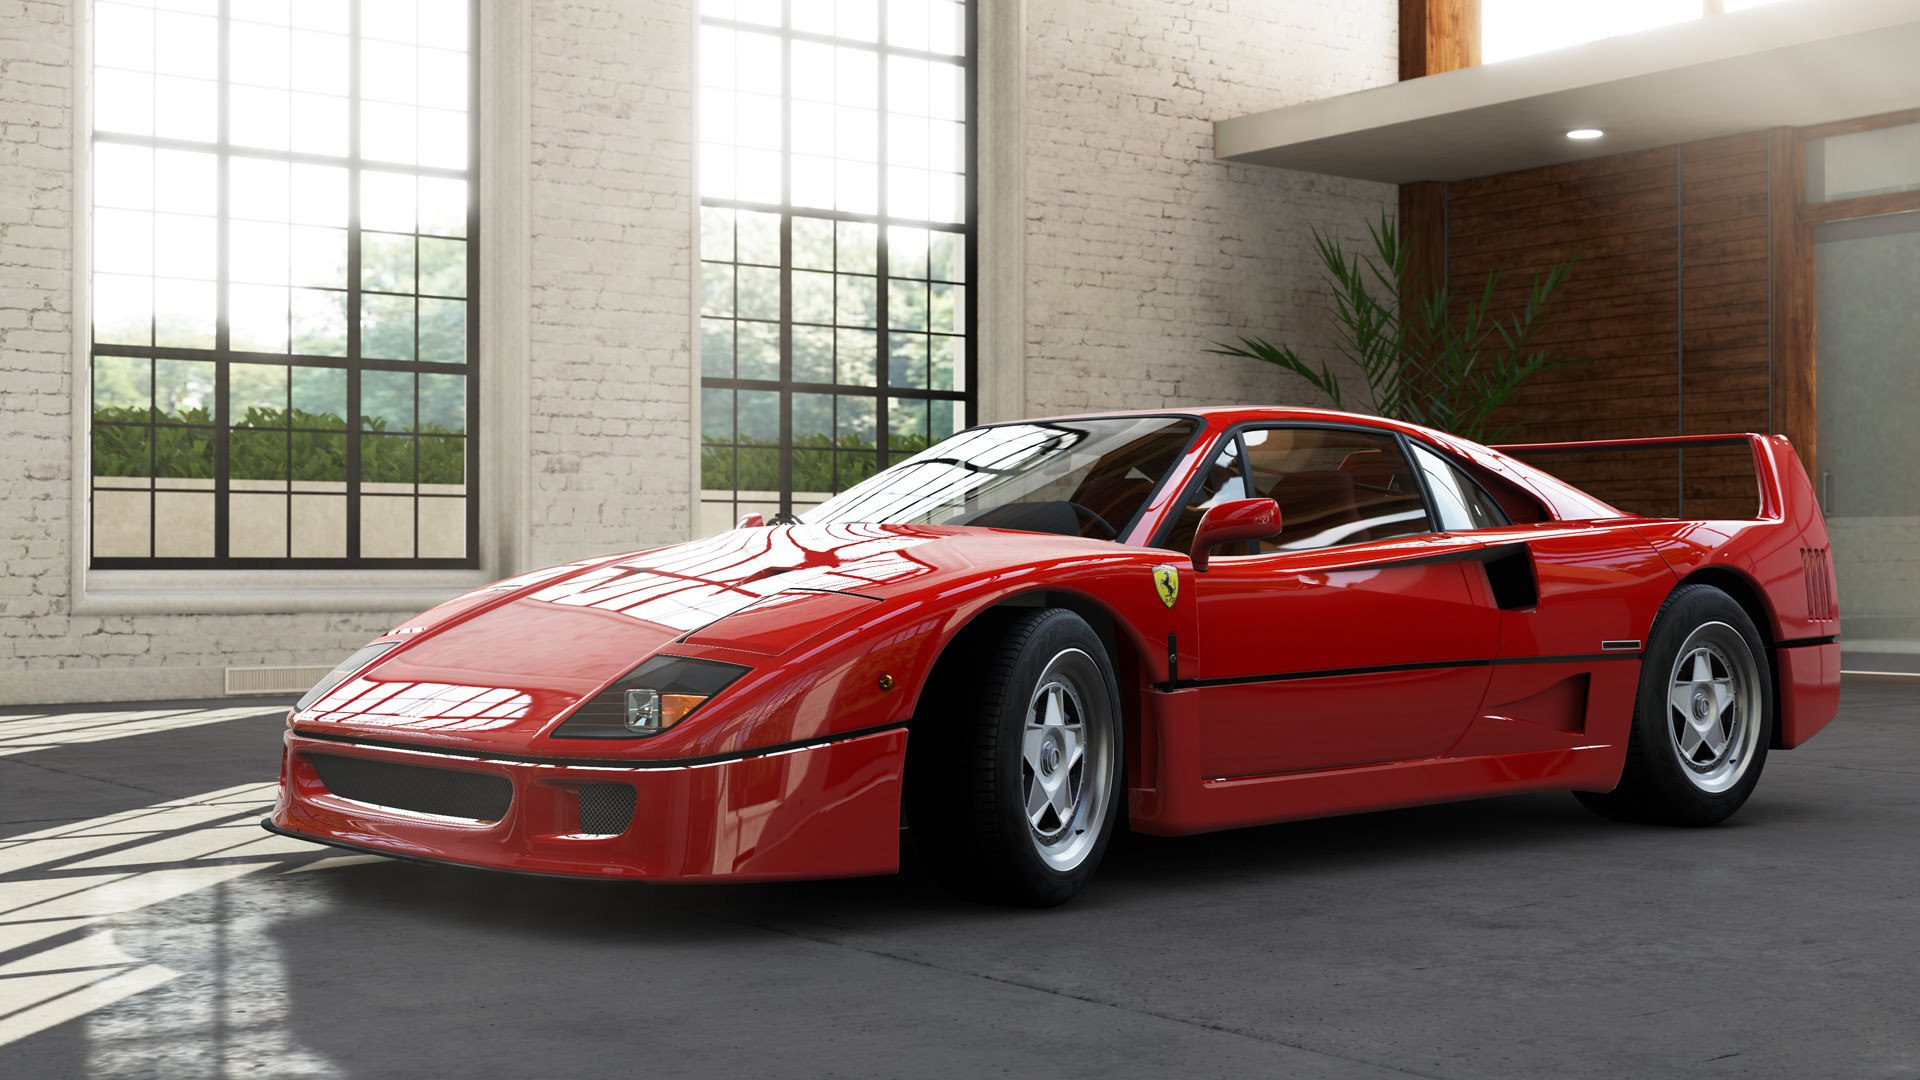 Ferrari F40 Wallpapers